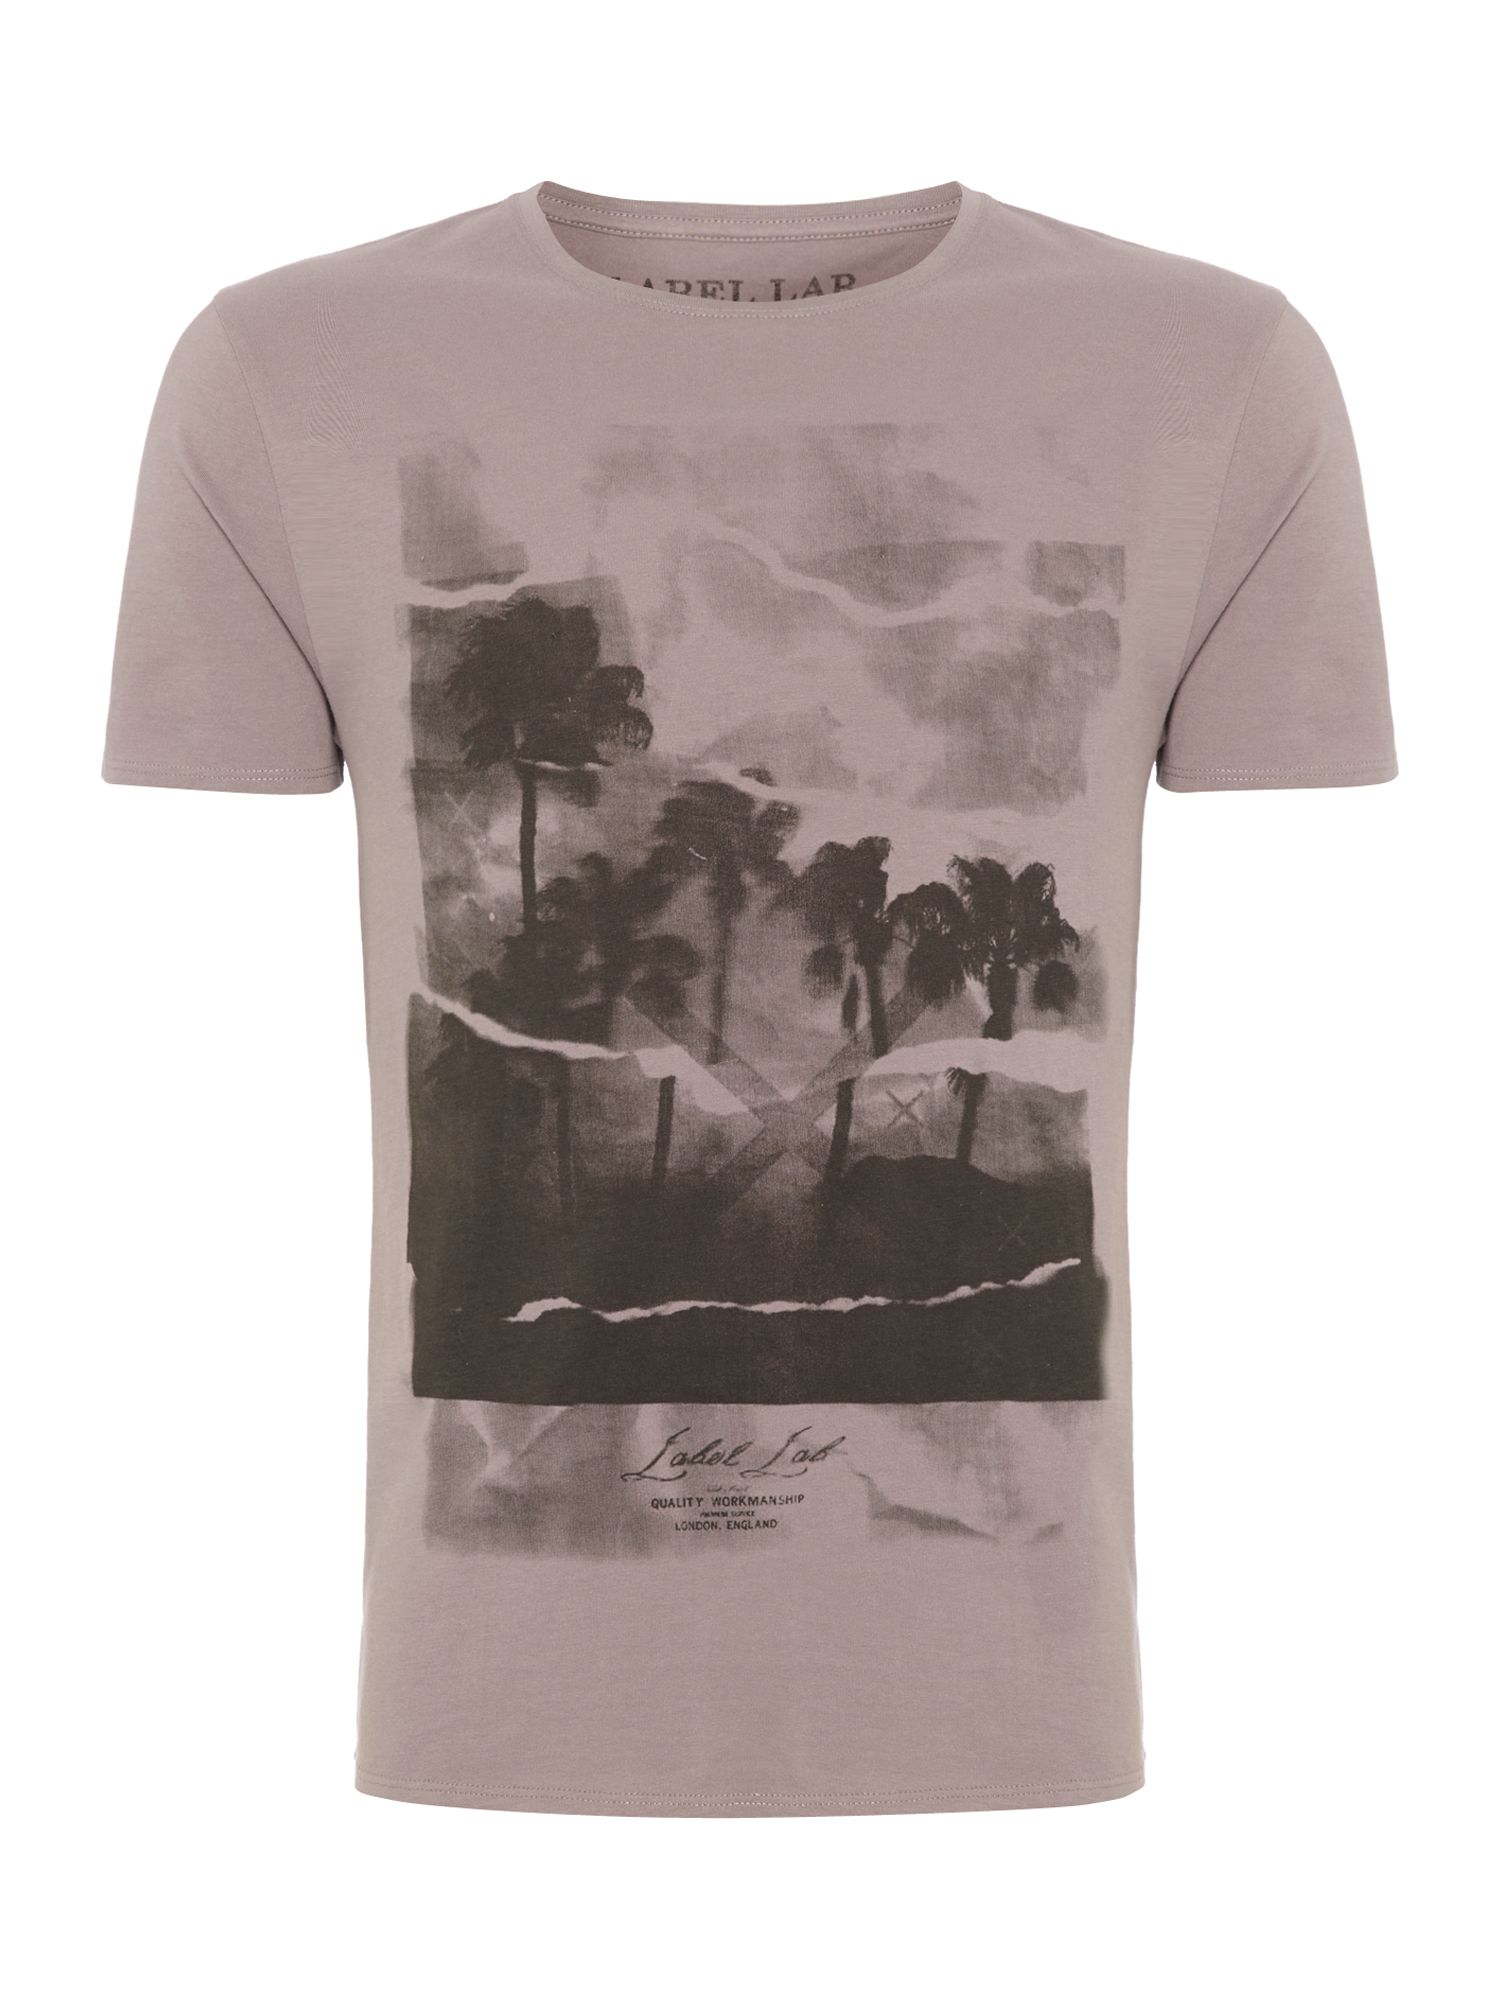 Palms graphic tee